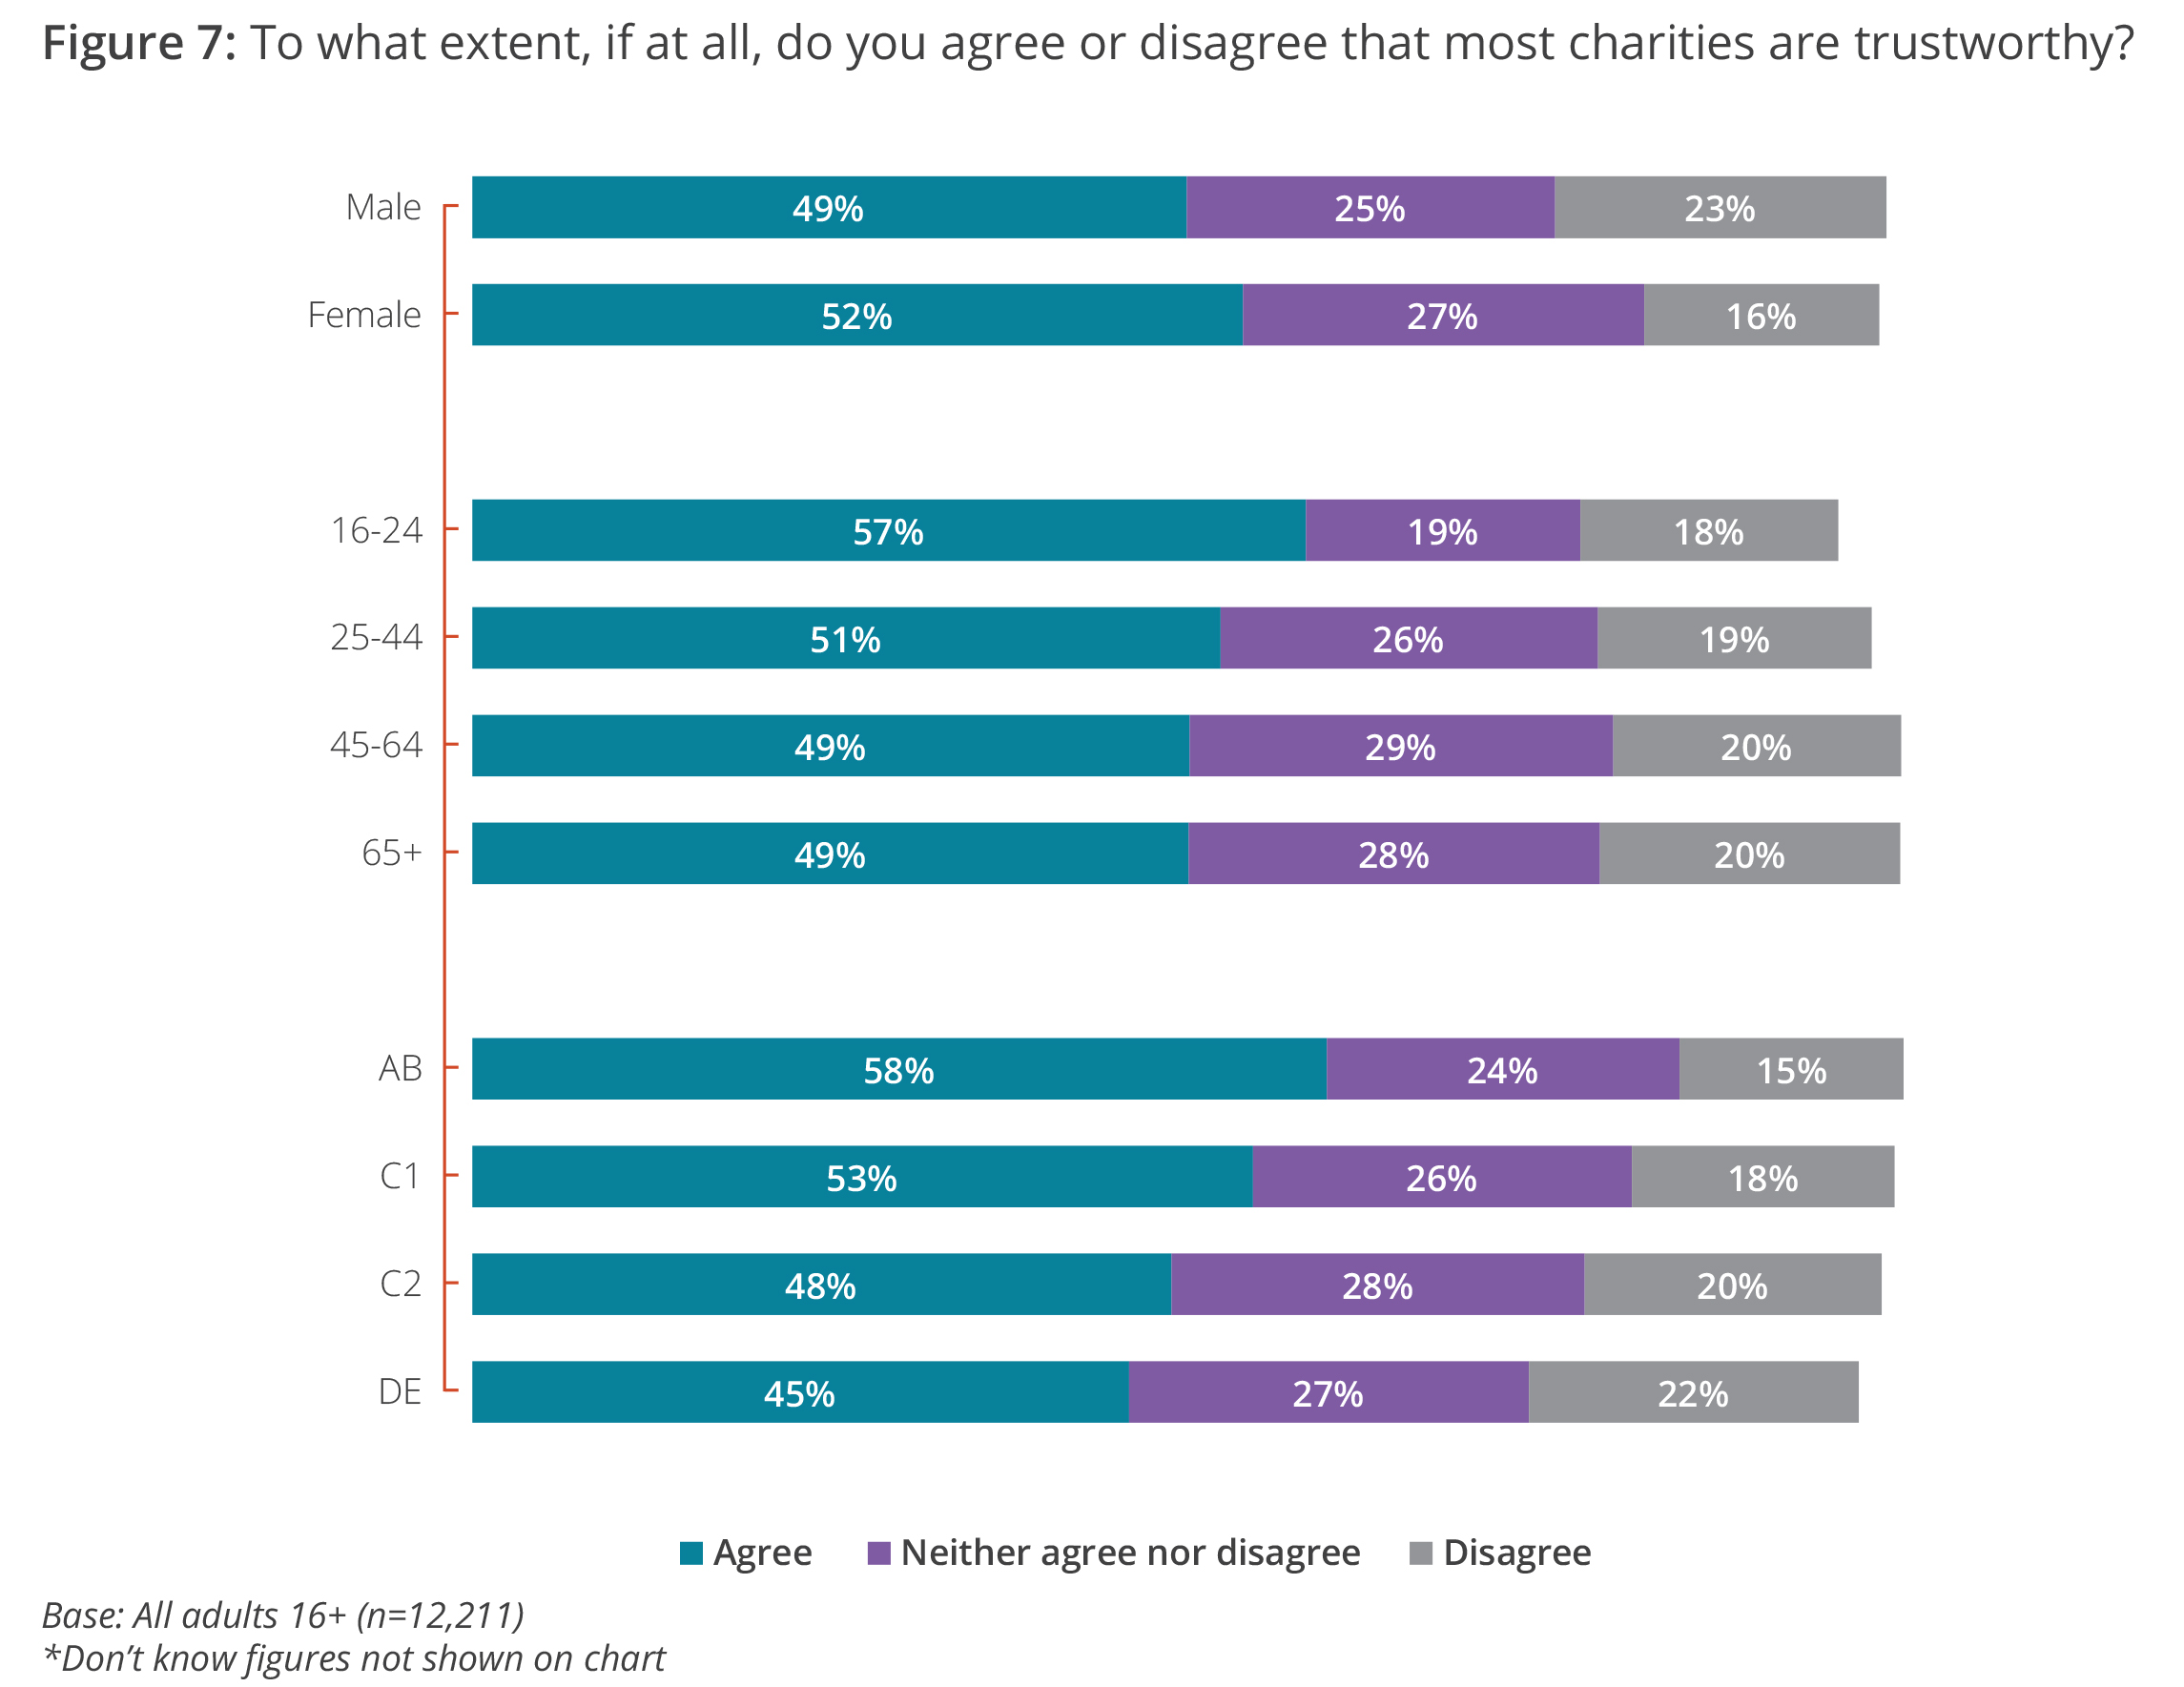 To what extent, if at all, do you agree or disagree that most charities